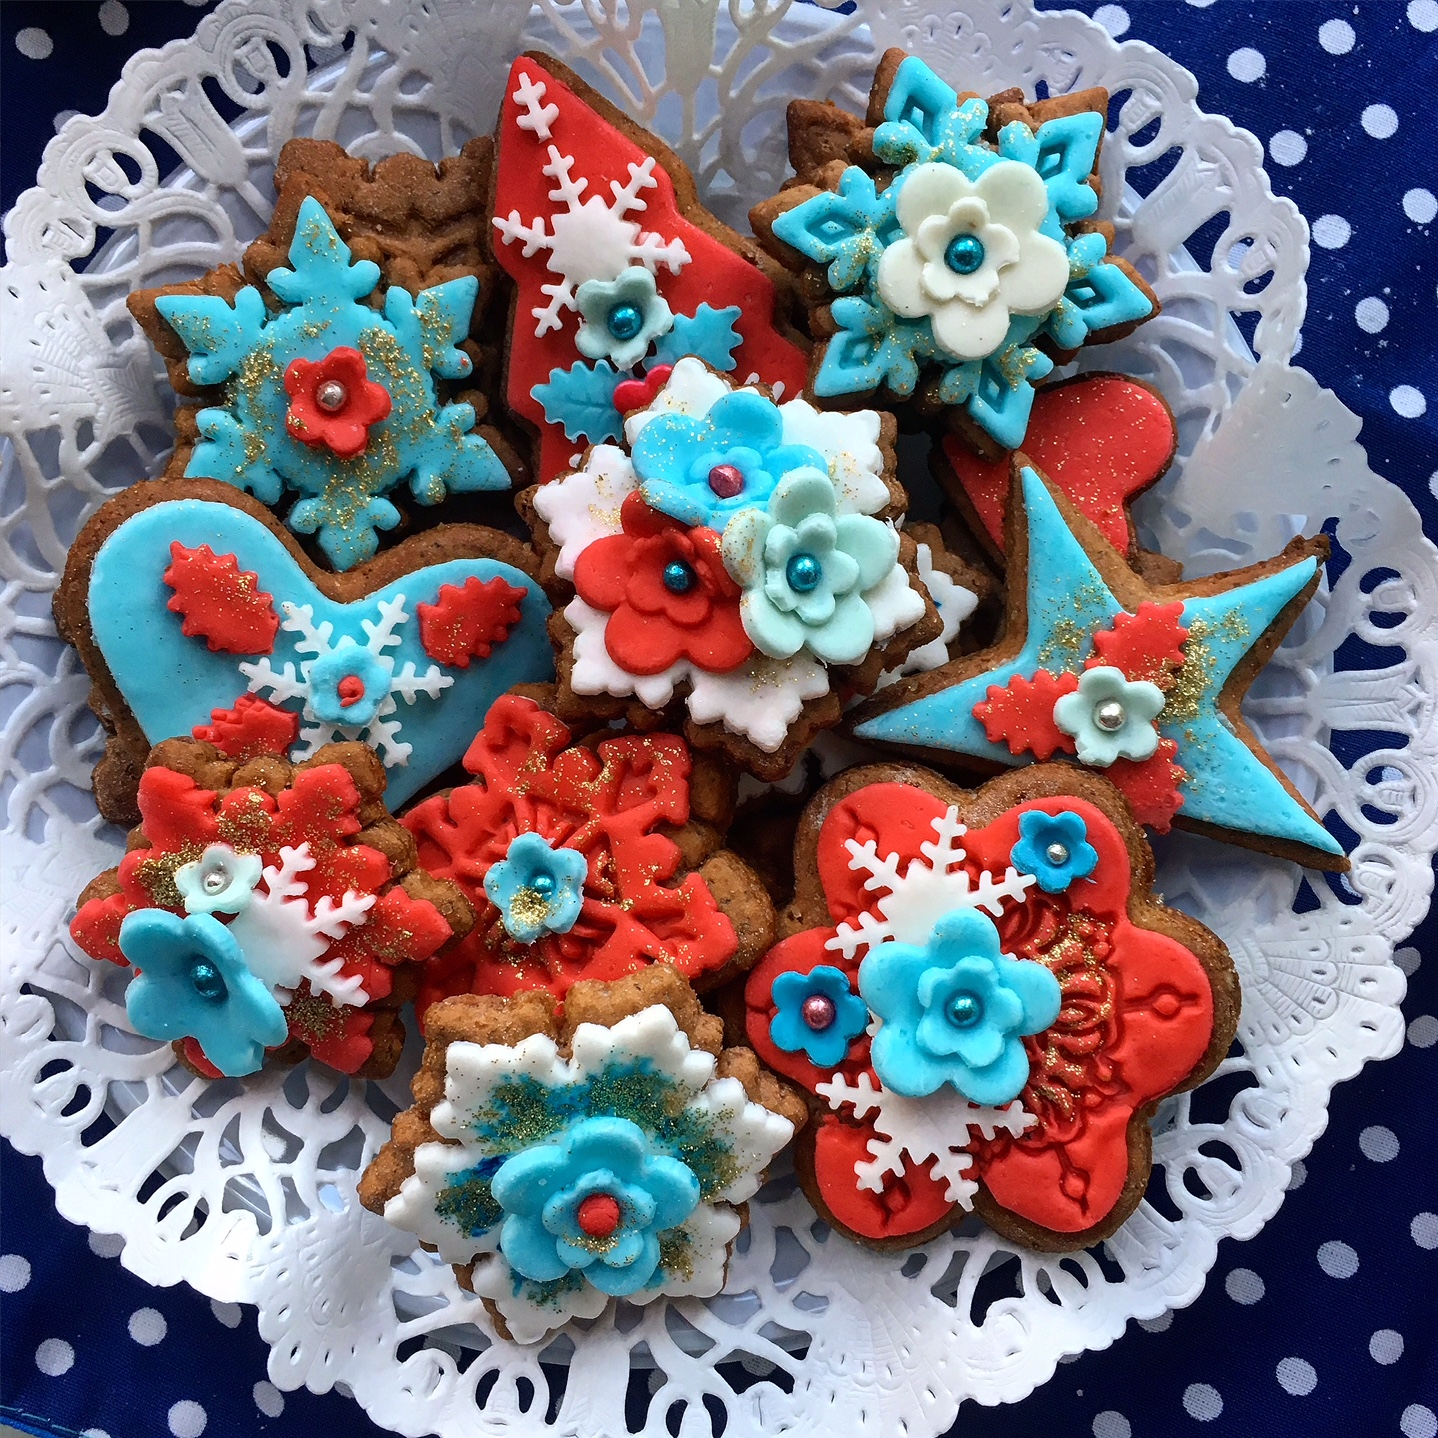 Christmas gingerbread cookies with red, blue and white decoration with some glitter